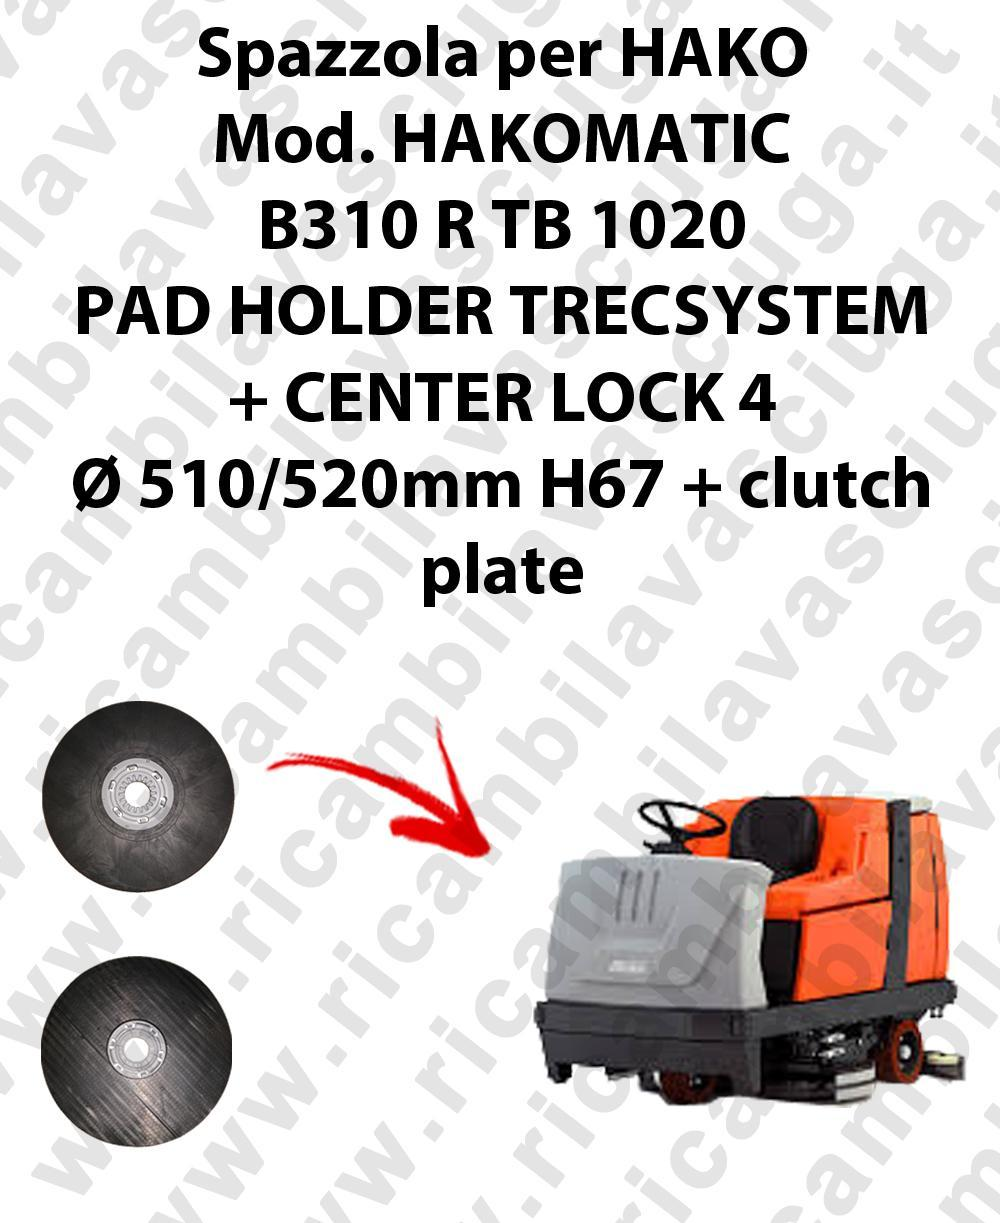 PAD HOLDER TRECSYSTEM  for scrubber dryer HAKO Model HAKOMATIC B310 R TB 1020